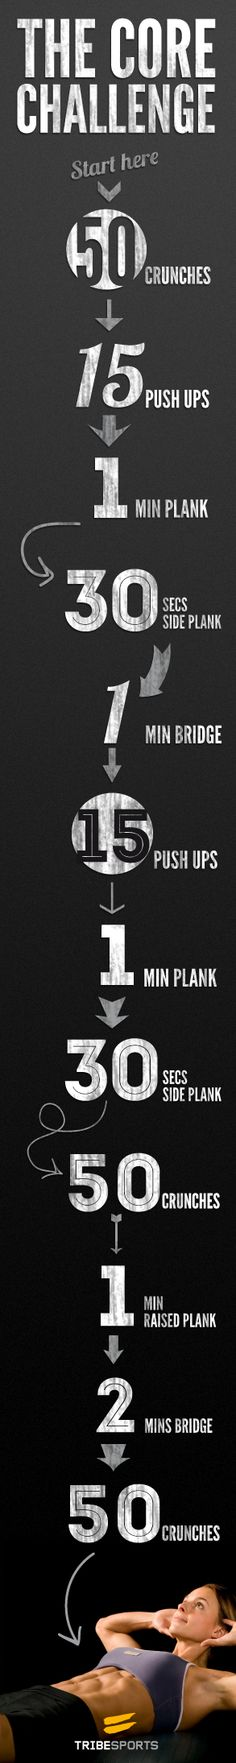 Good core workout! http://tribesports.com/blog/weekly-challenge-core-workout